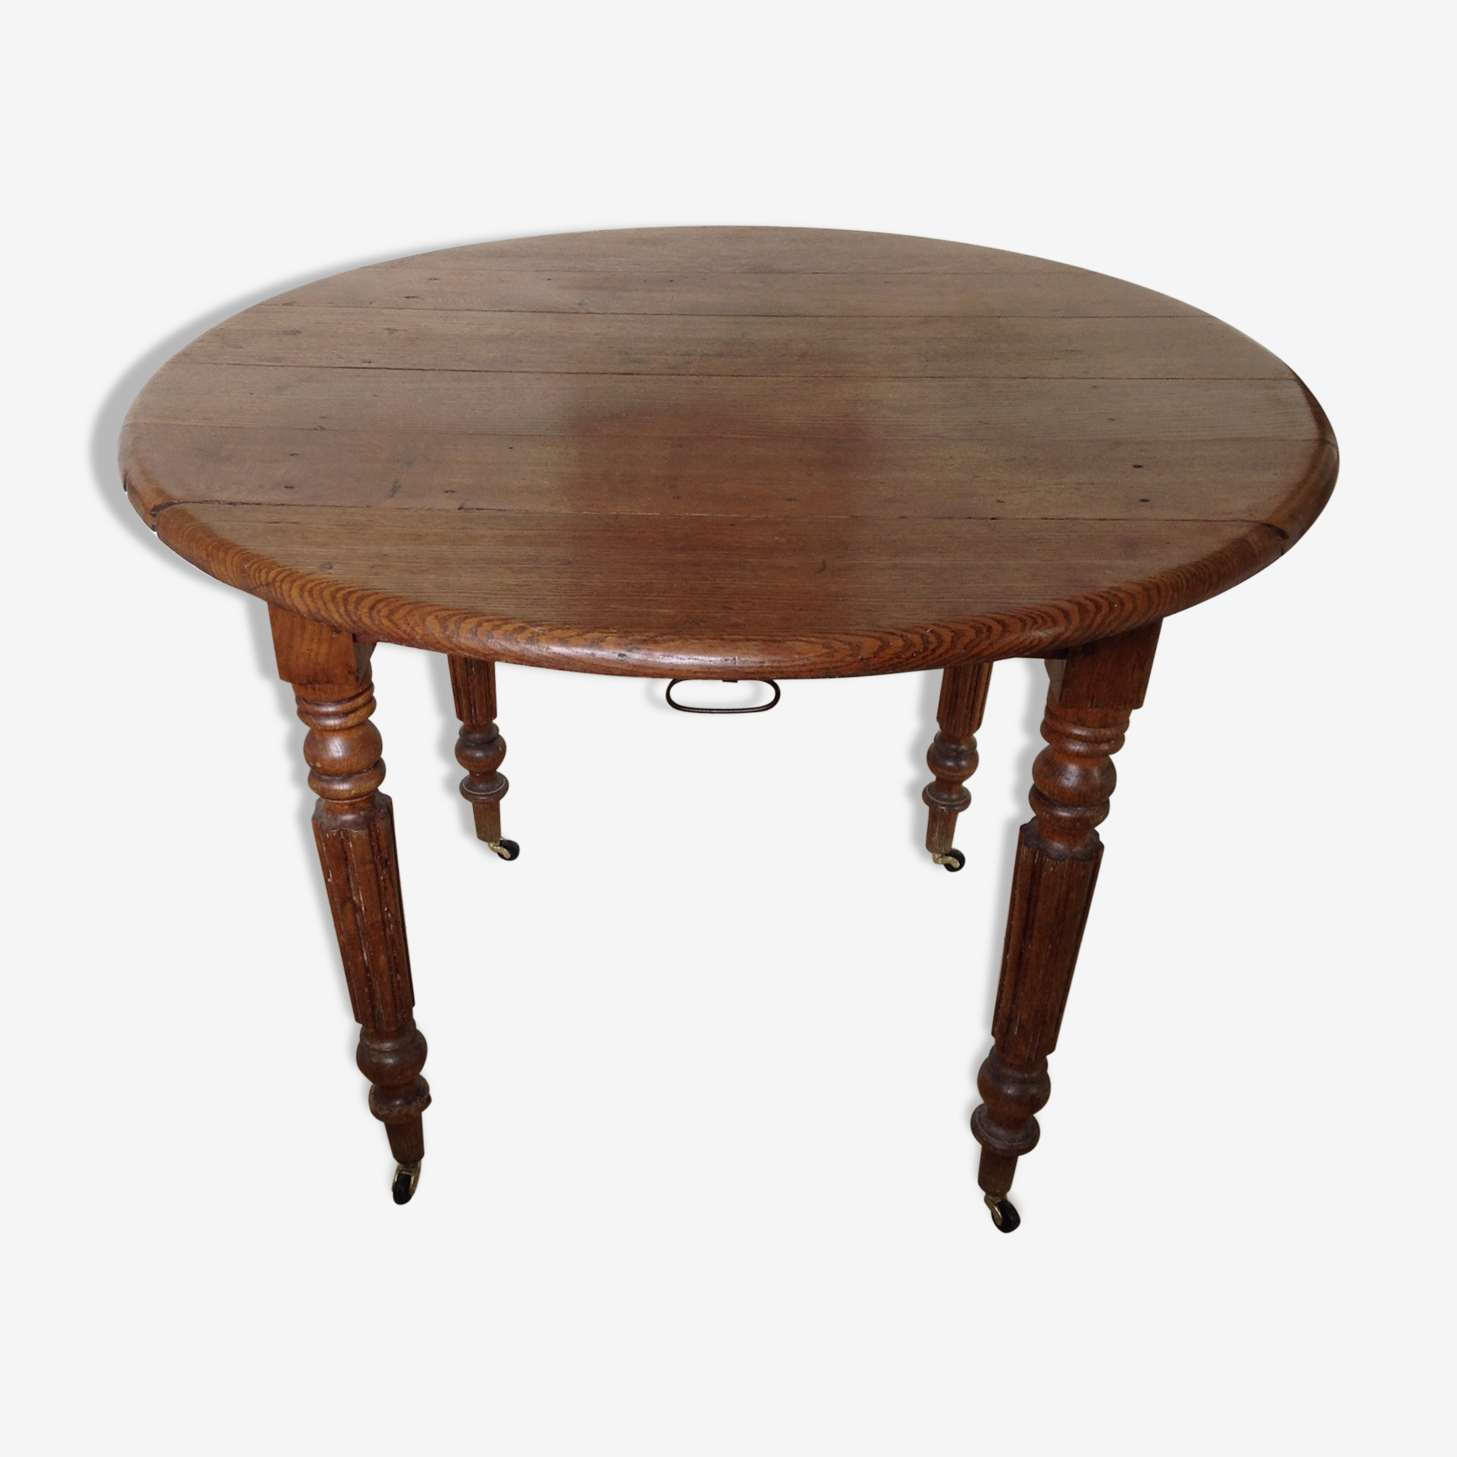 Old round table